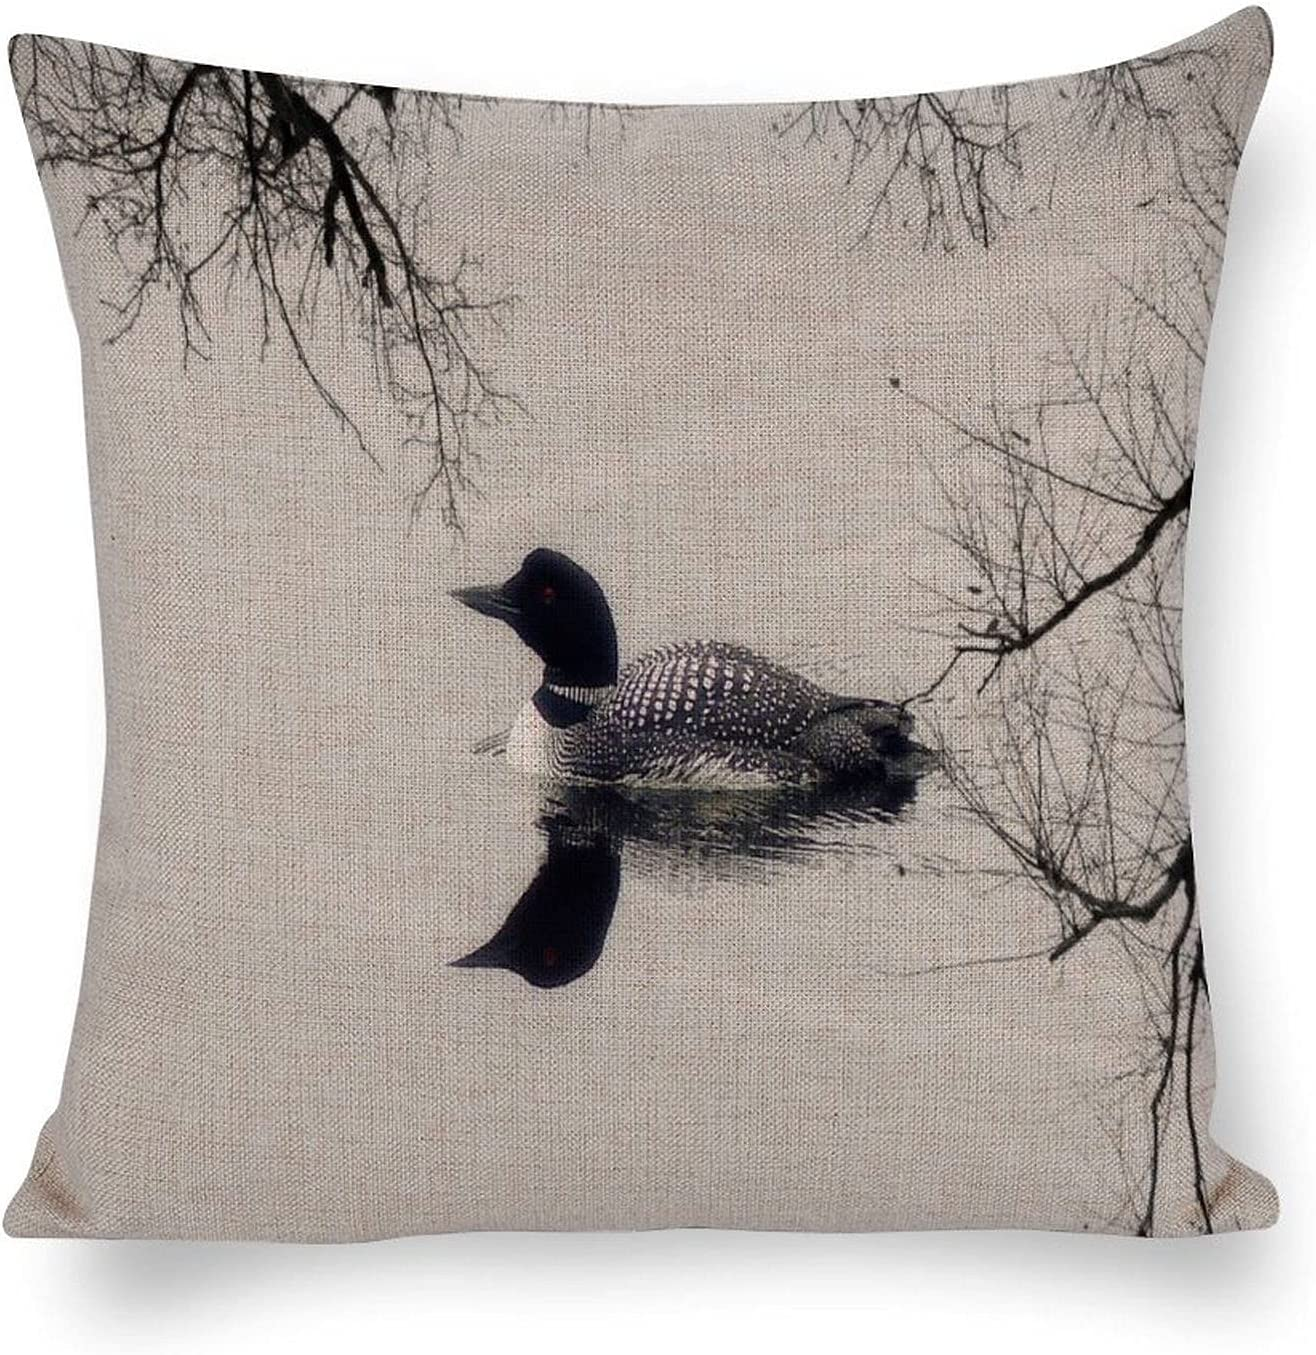 Tamengi Pack of 2, Cotton Linen Decorative Throw Pillowcase Cushion Cover, Common Loon Swims in A Northern Lake in Winter Pillowcase Cushion Covers for Home Sofa Couch Car Holiday Decor 20